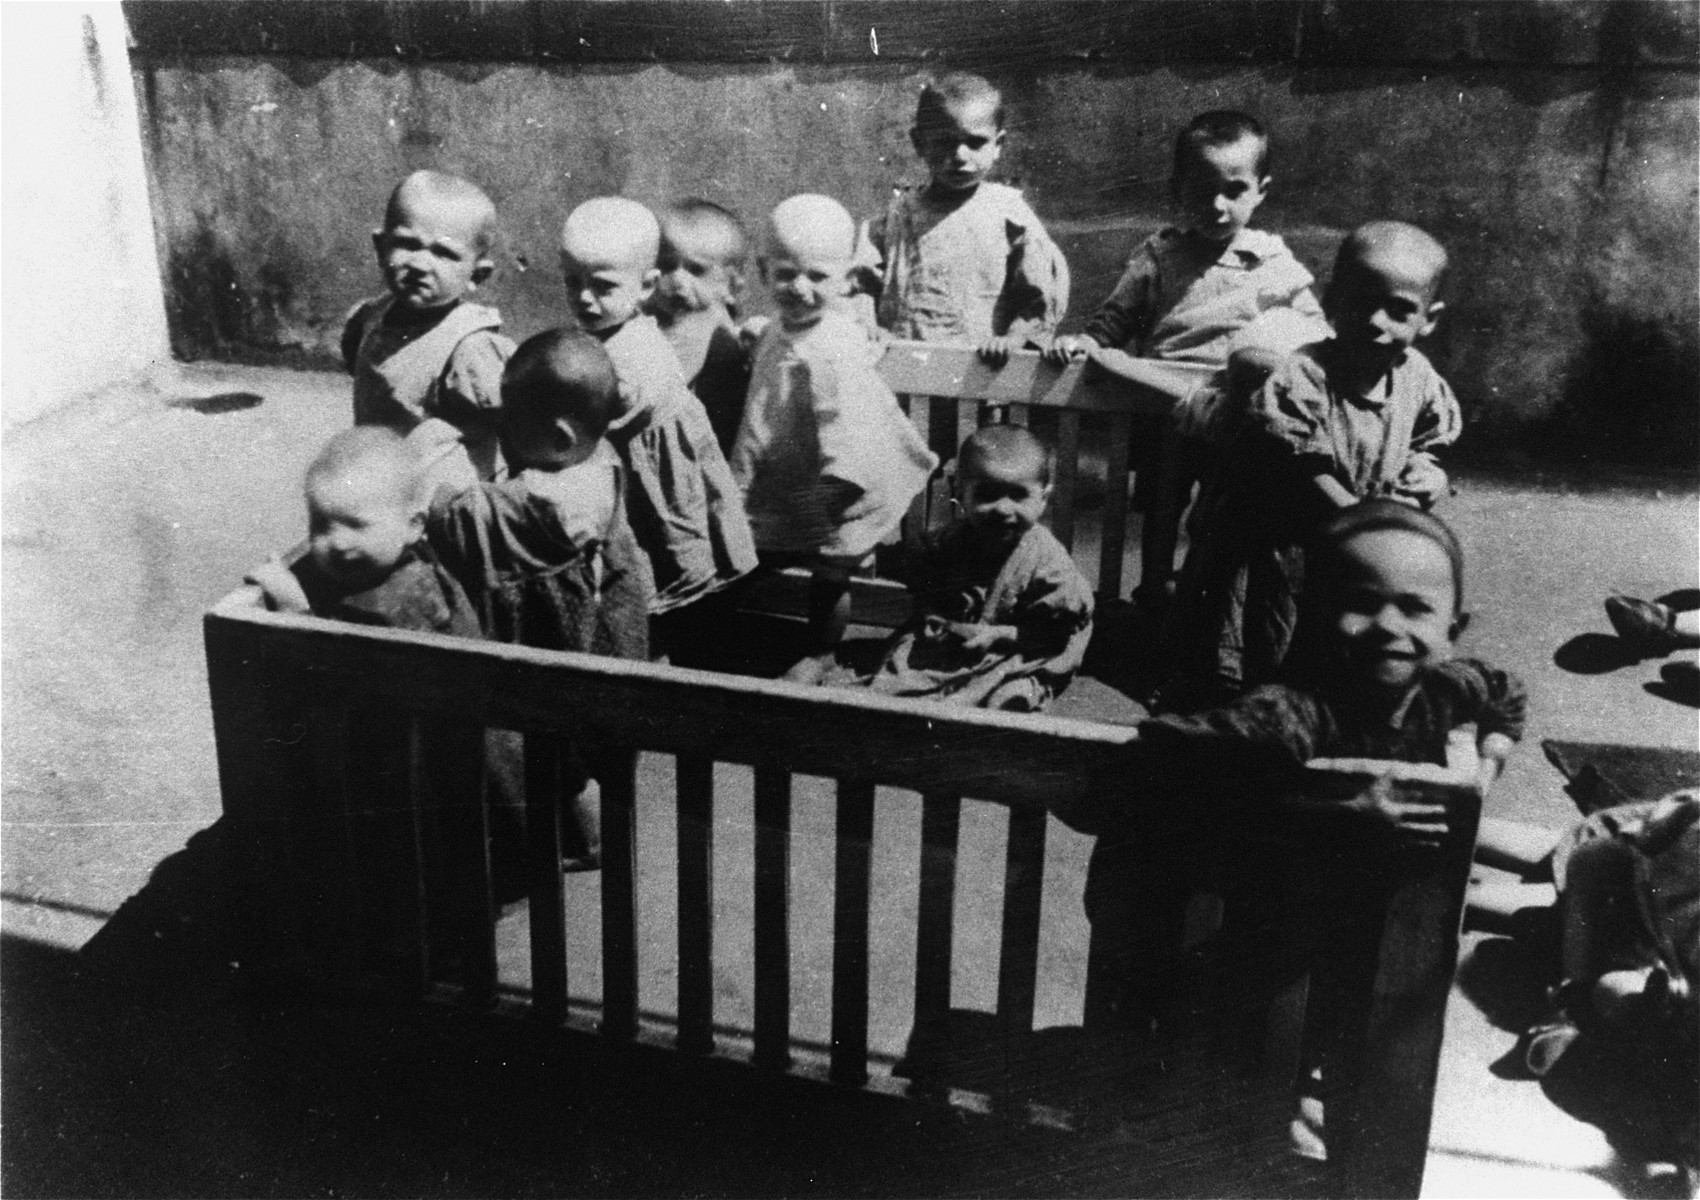 Jewish toddlers play outside in a large playpen in the courtyard of an orphanage in the Leszniow ghetto.